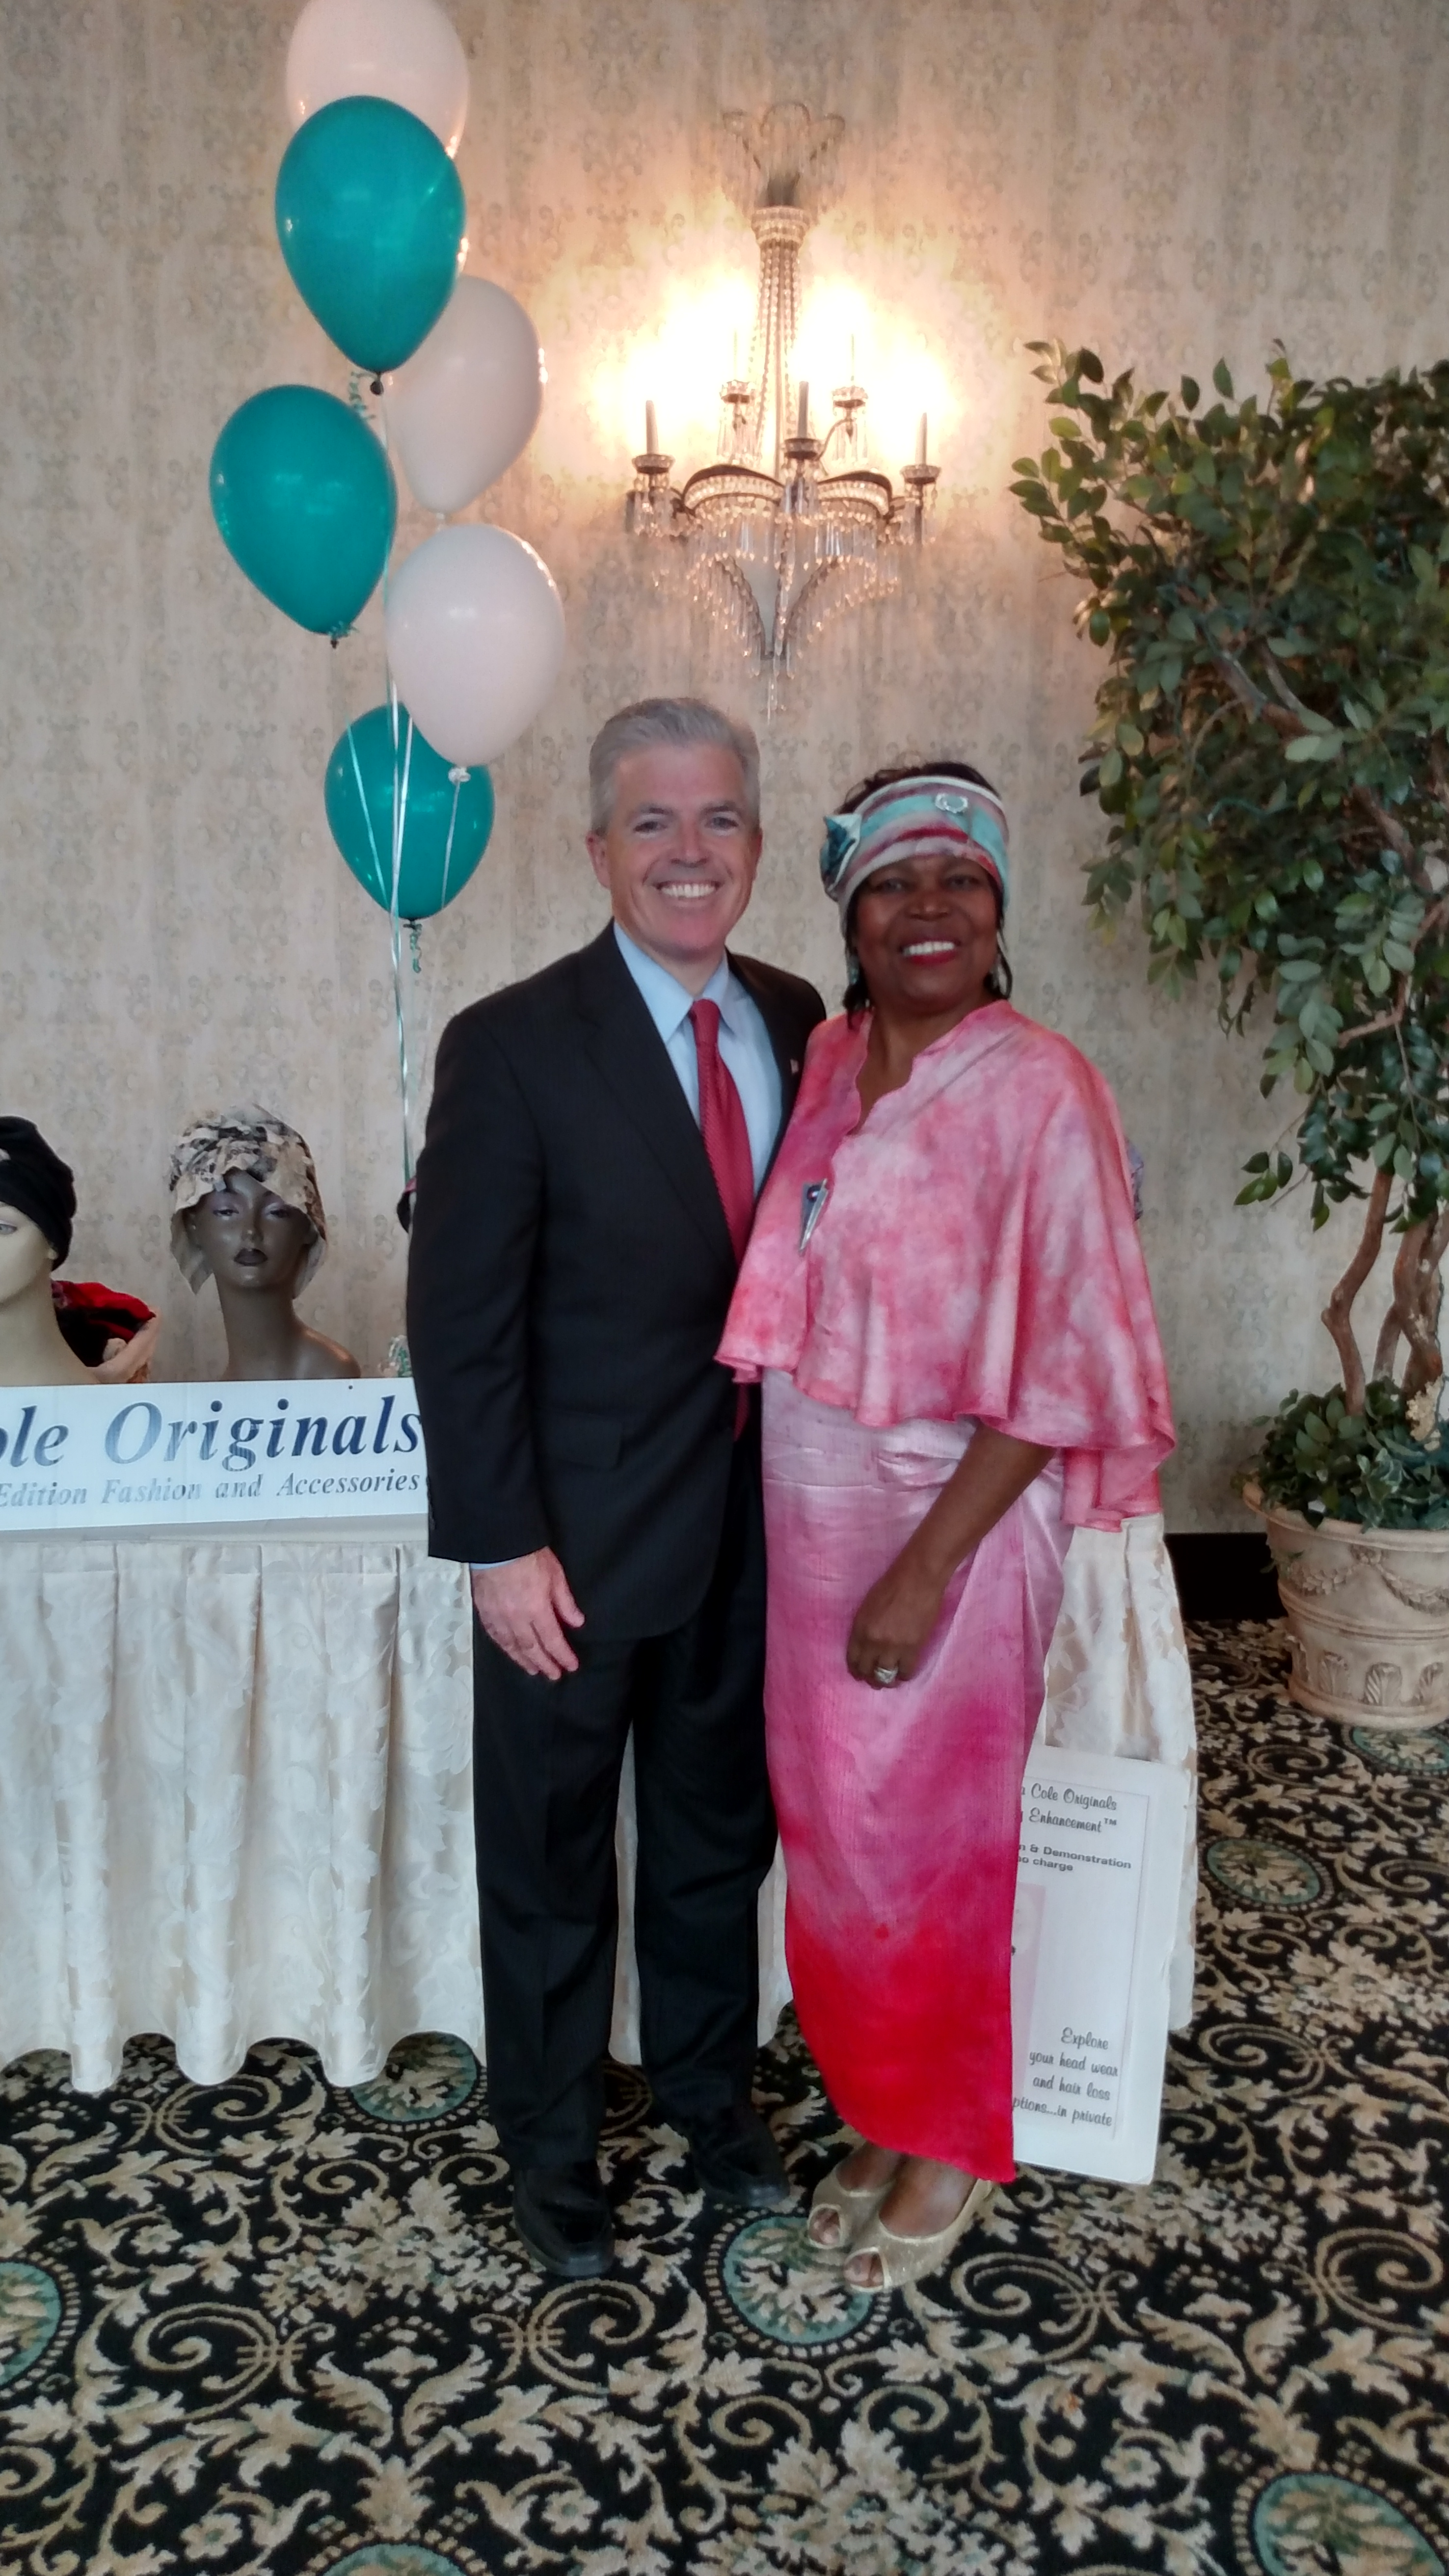 Suffolk County Executive Steve Bellone Stops by Madona Cole Originals Dignity Headwear Display Table at East Wind Inn